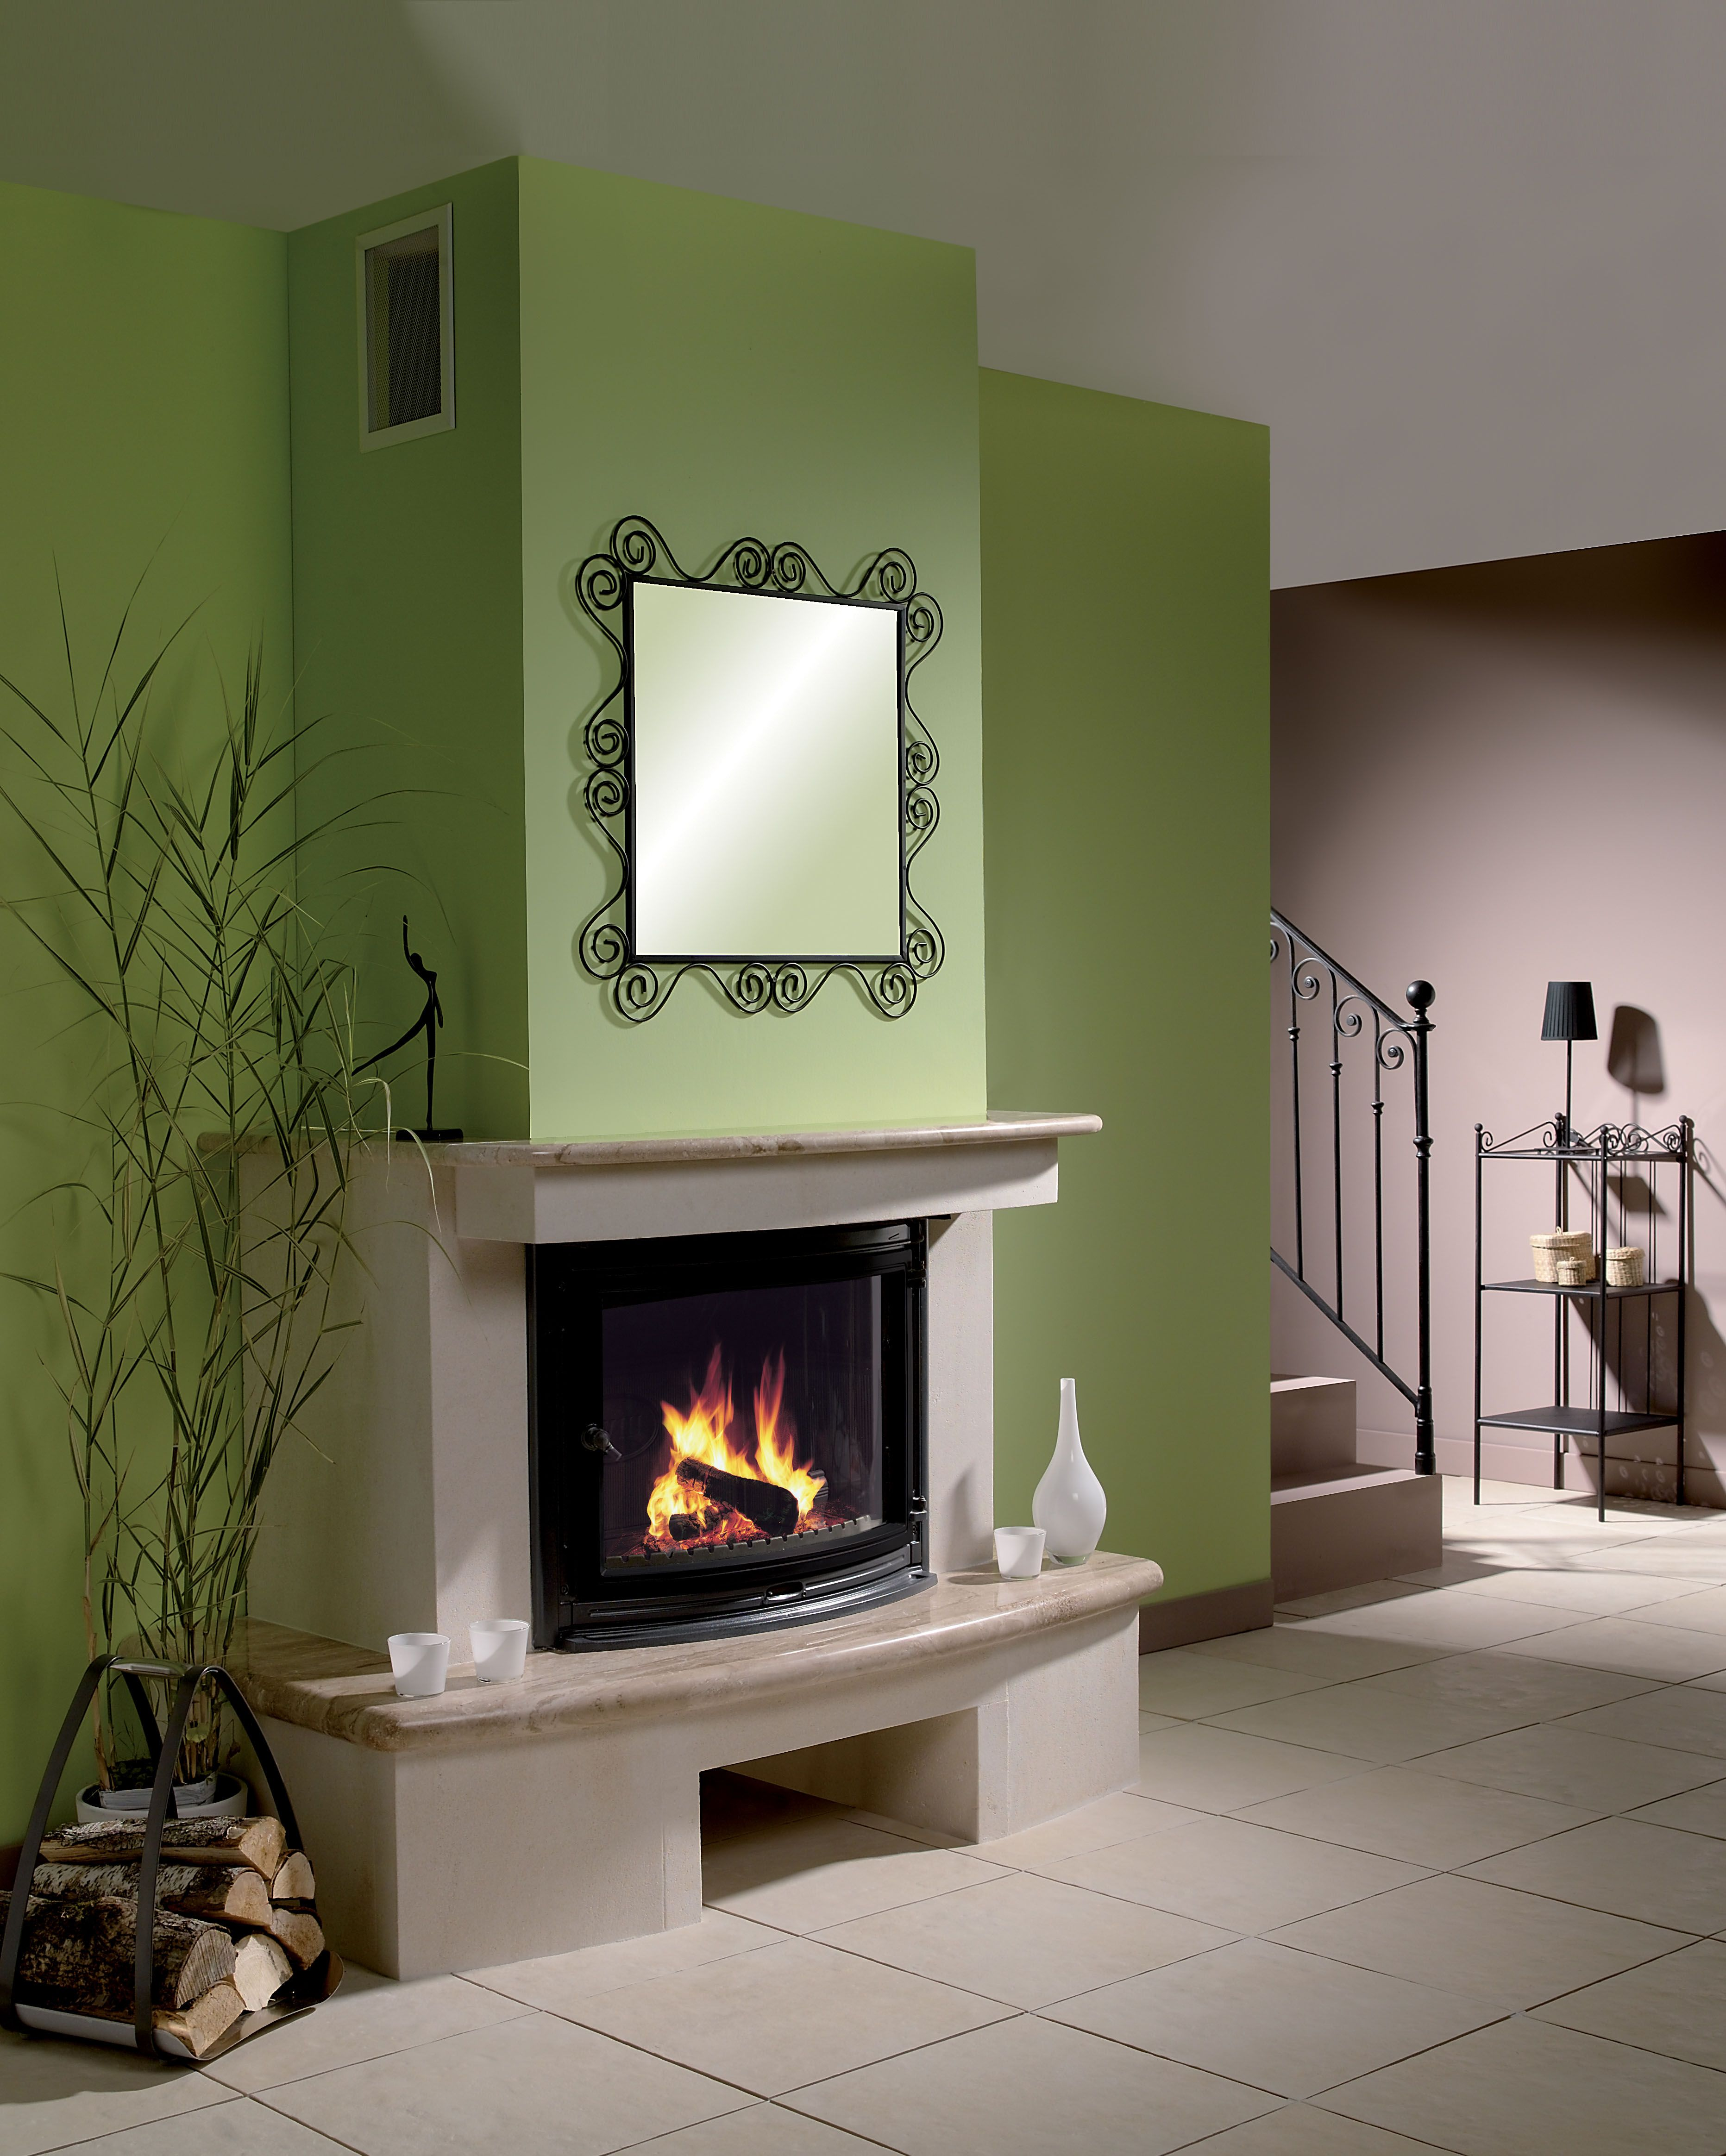 18 Fireplace Insert This Is A Large Fireplace Insert In A Contemporary Design With